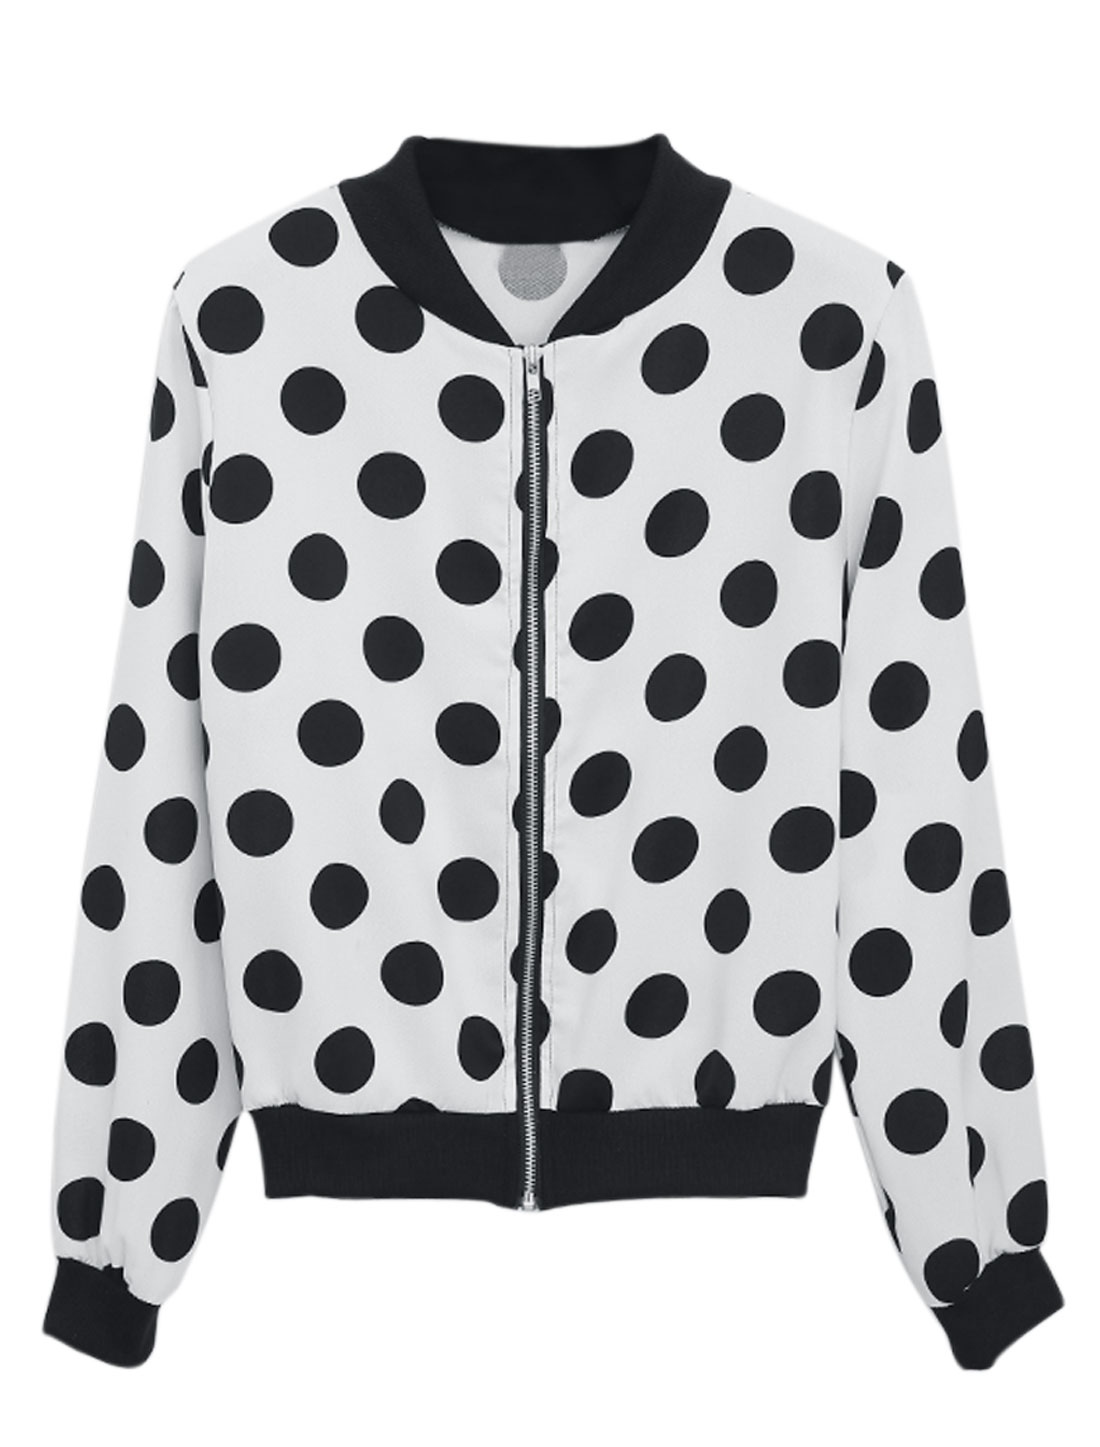 Lady Stand Collar Dots Pattern Zip Up Casual Jacket White Black S